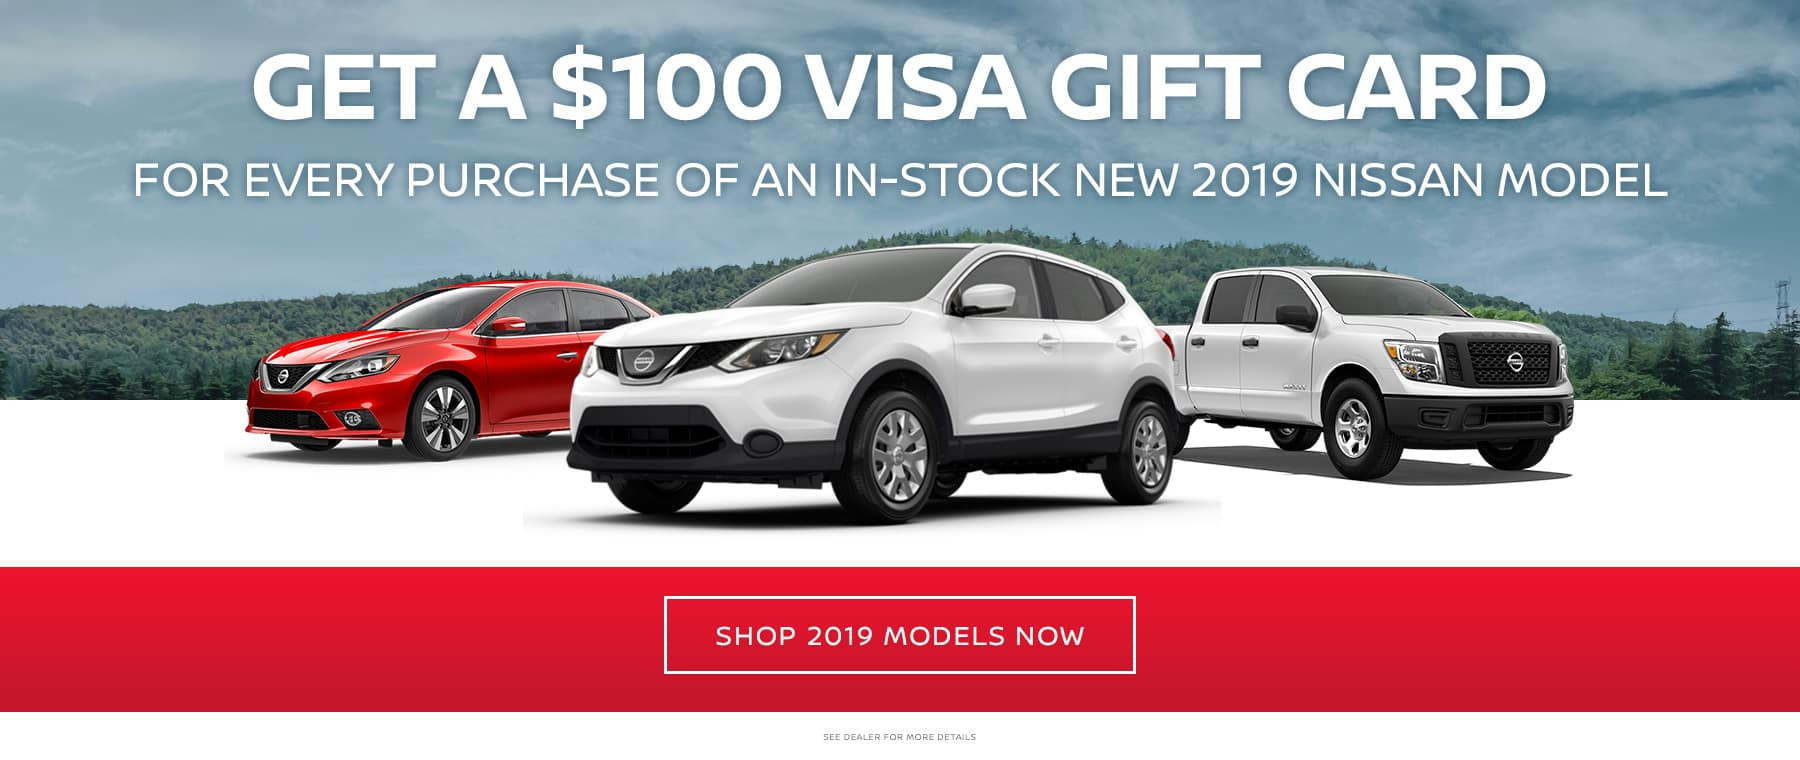 $100 Visa Gift Card Offer